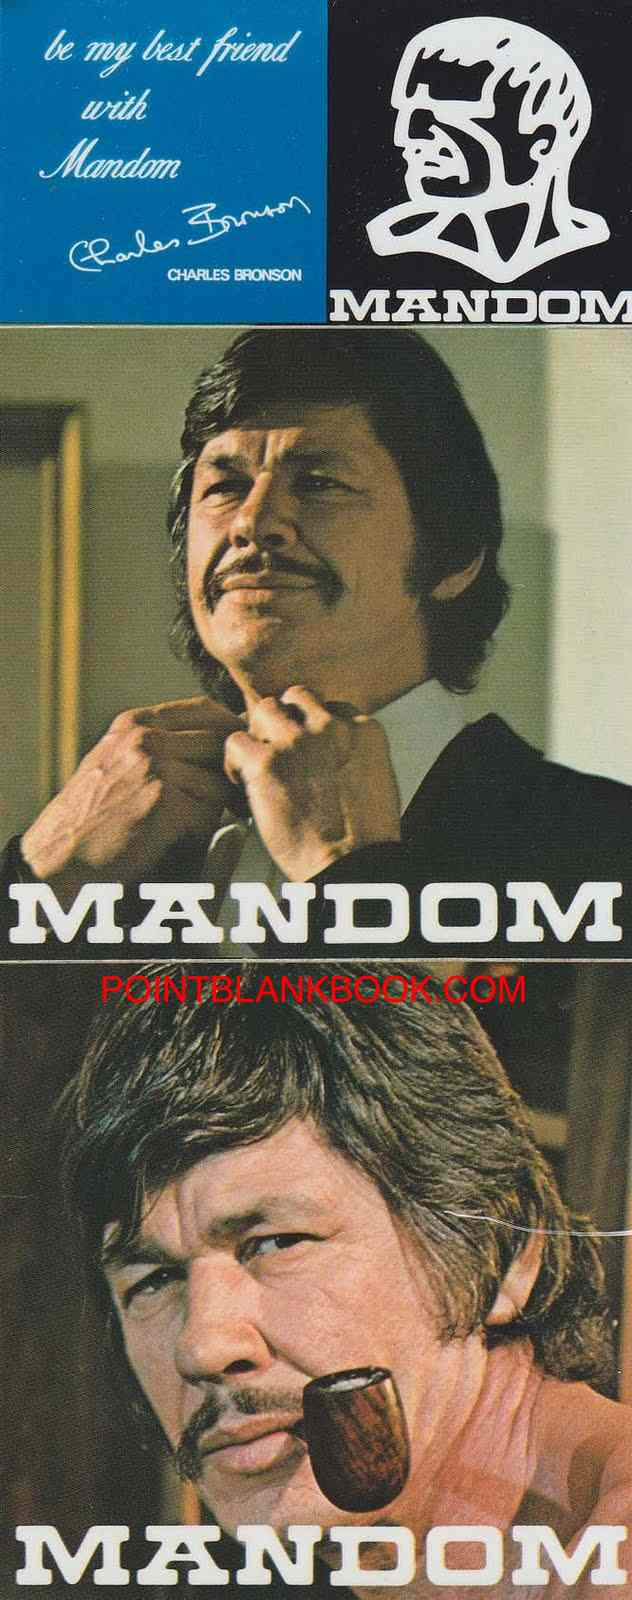 Print ad for Charles Bronson's Japanese Mandom campaign.